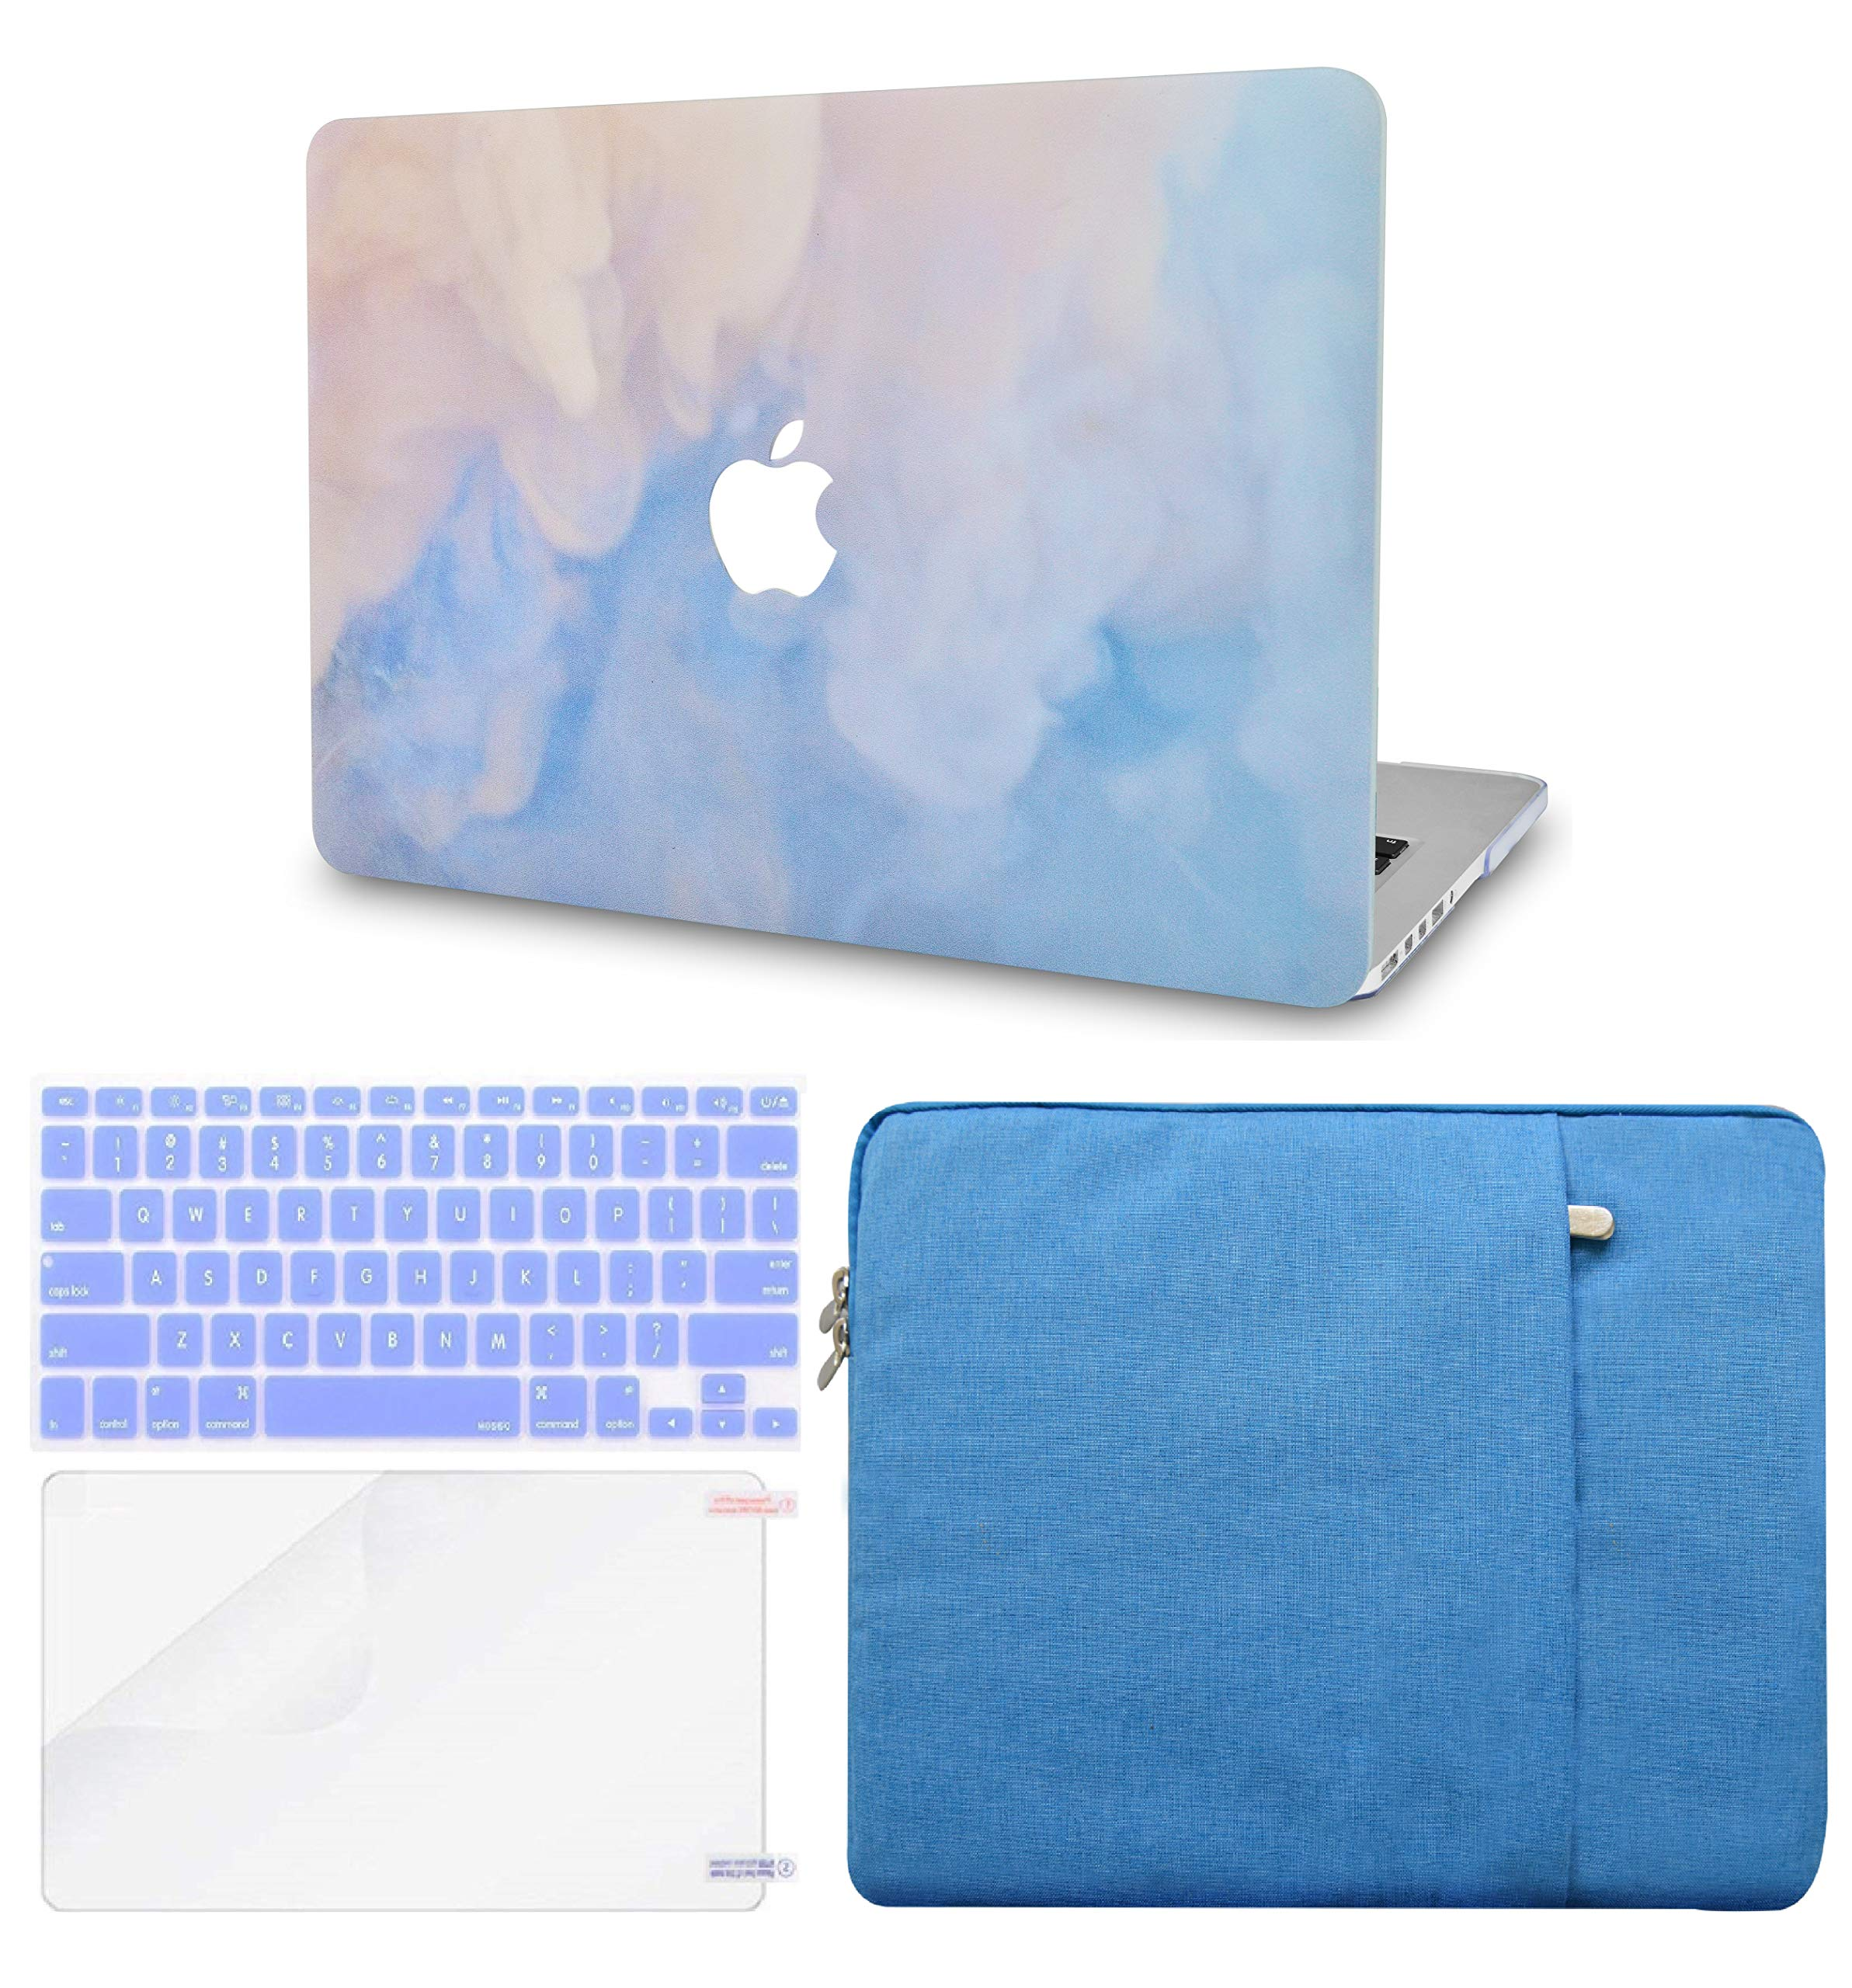 LuvCase 4in1 LaptopCase for MacBook Air 13 Inch(2020/2019/2018) A2179/A1932 Retina Display (Touch ID)HardShellCover, Sleeve, Keyboard Cover & Screen Protector (Blue Mist)